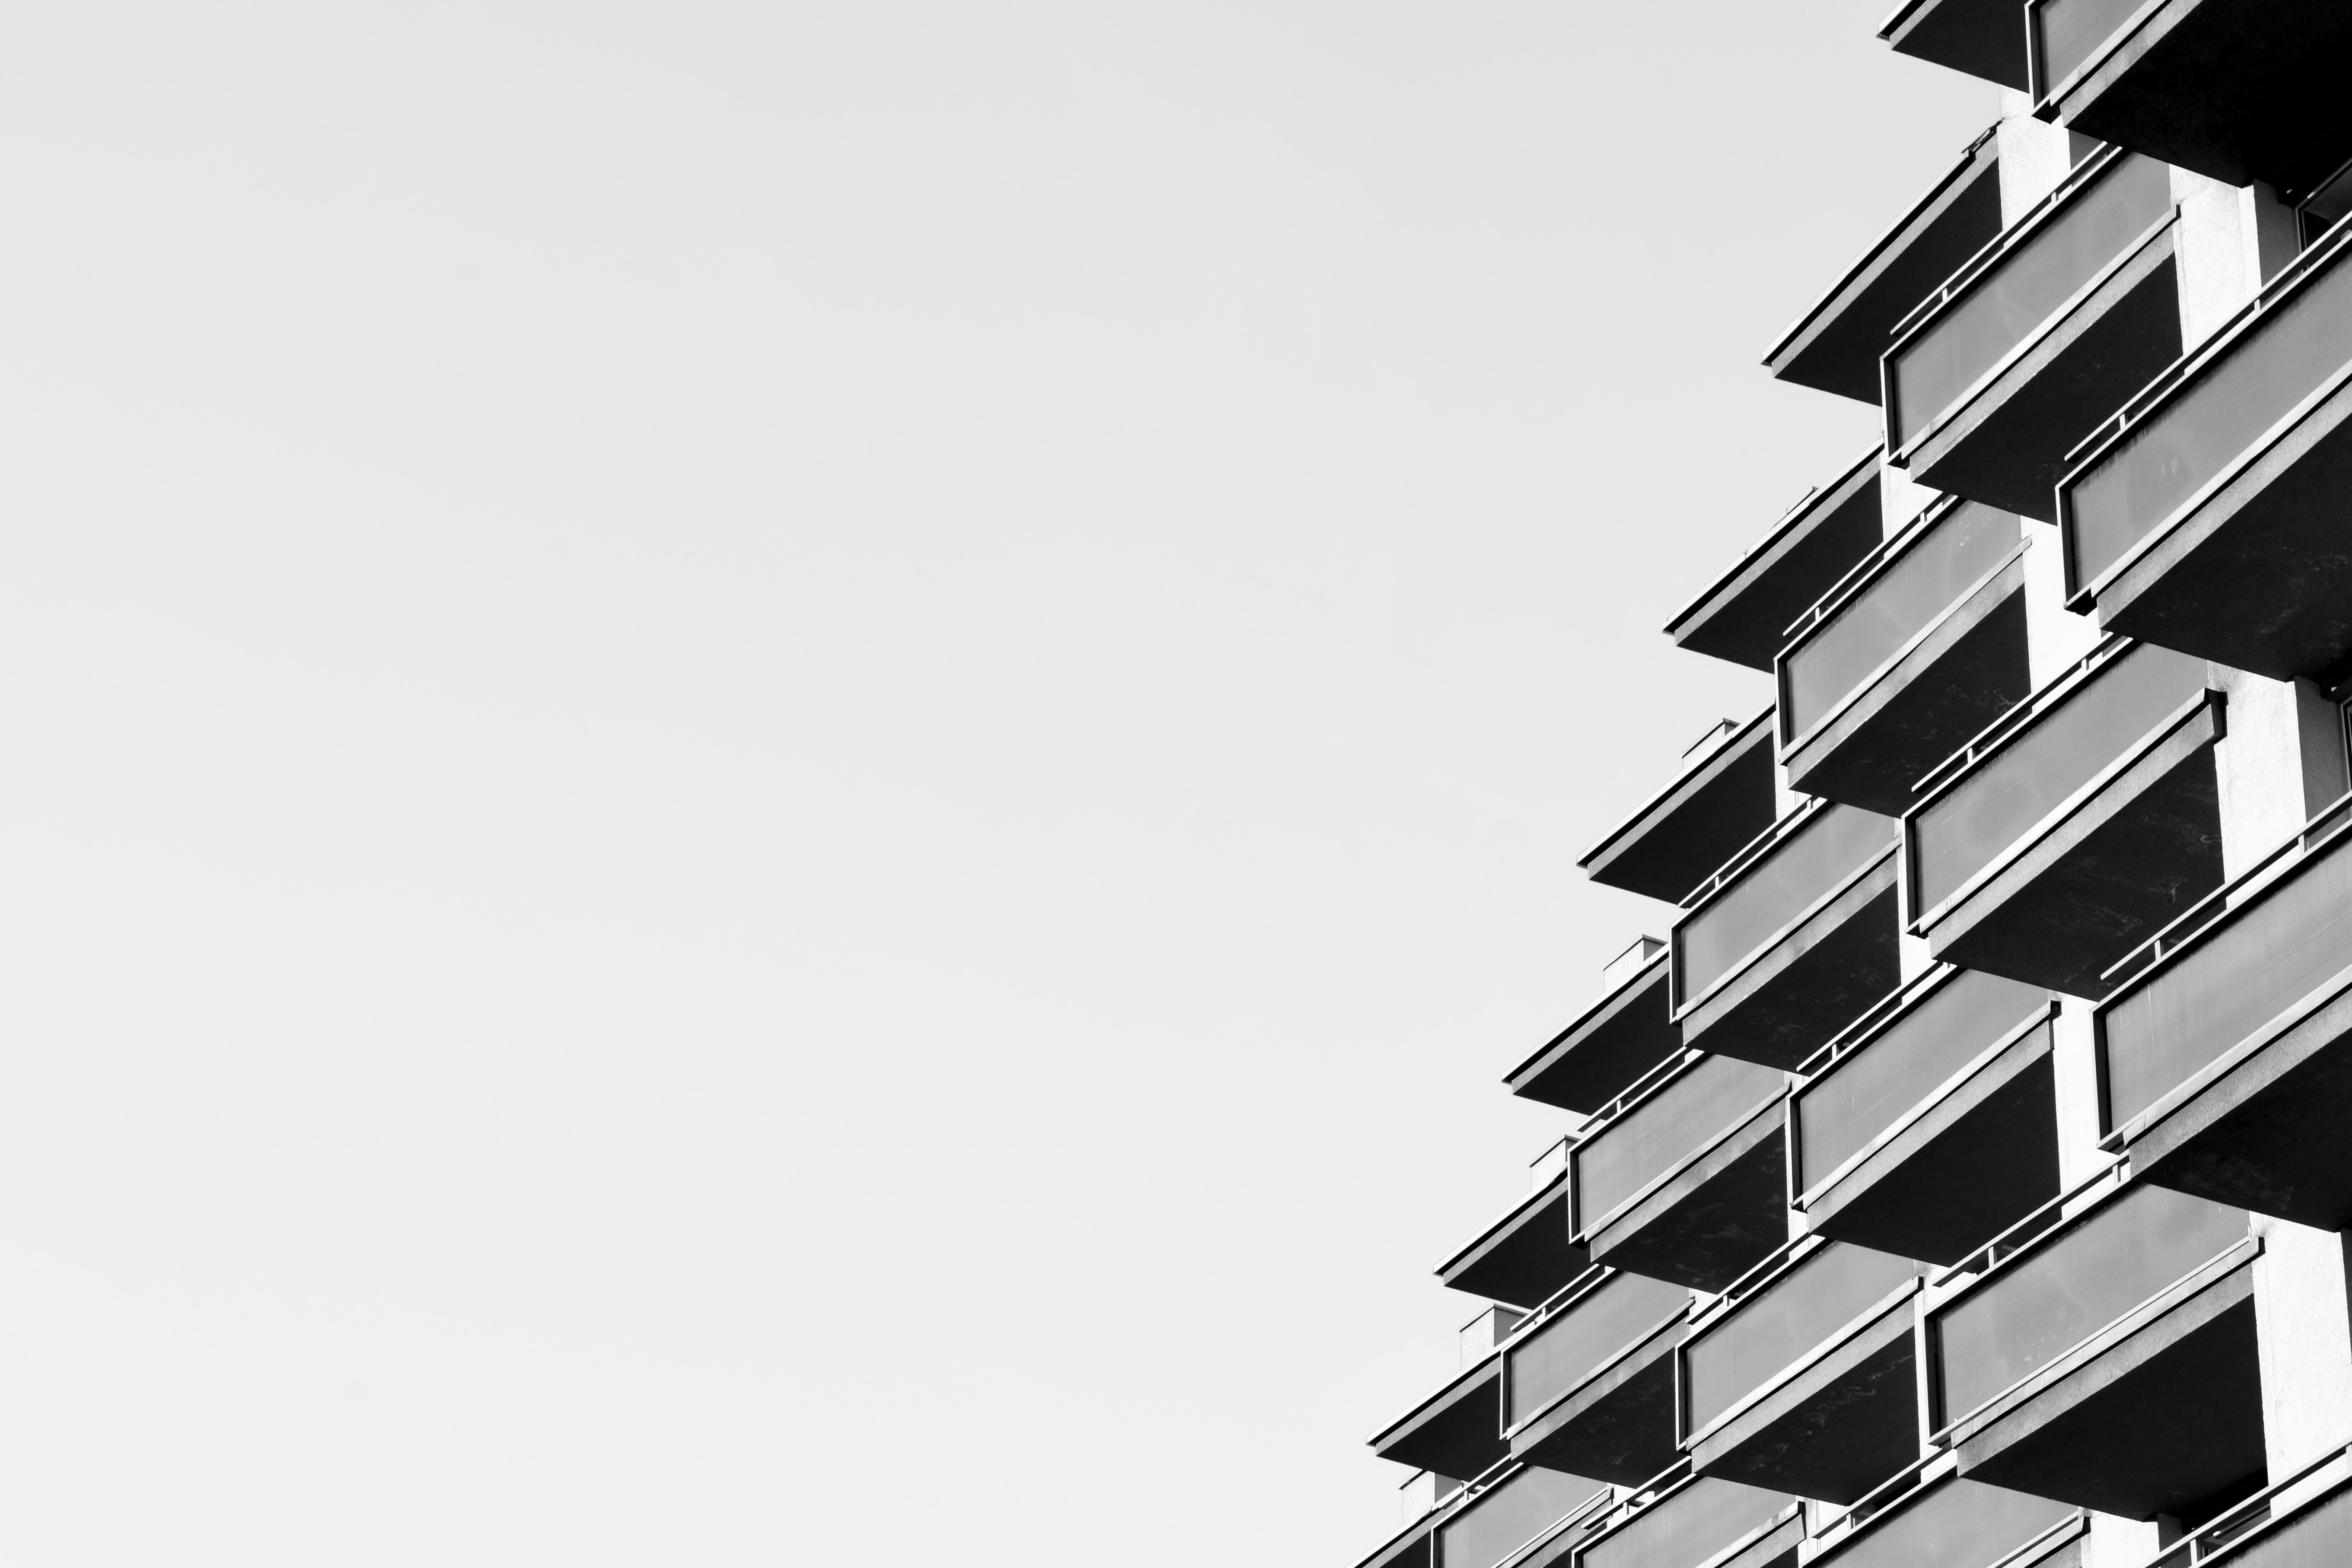 Free stock photo of architectural, architectural design, blank space, building exterior